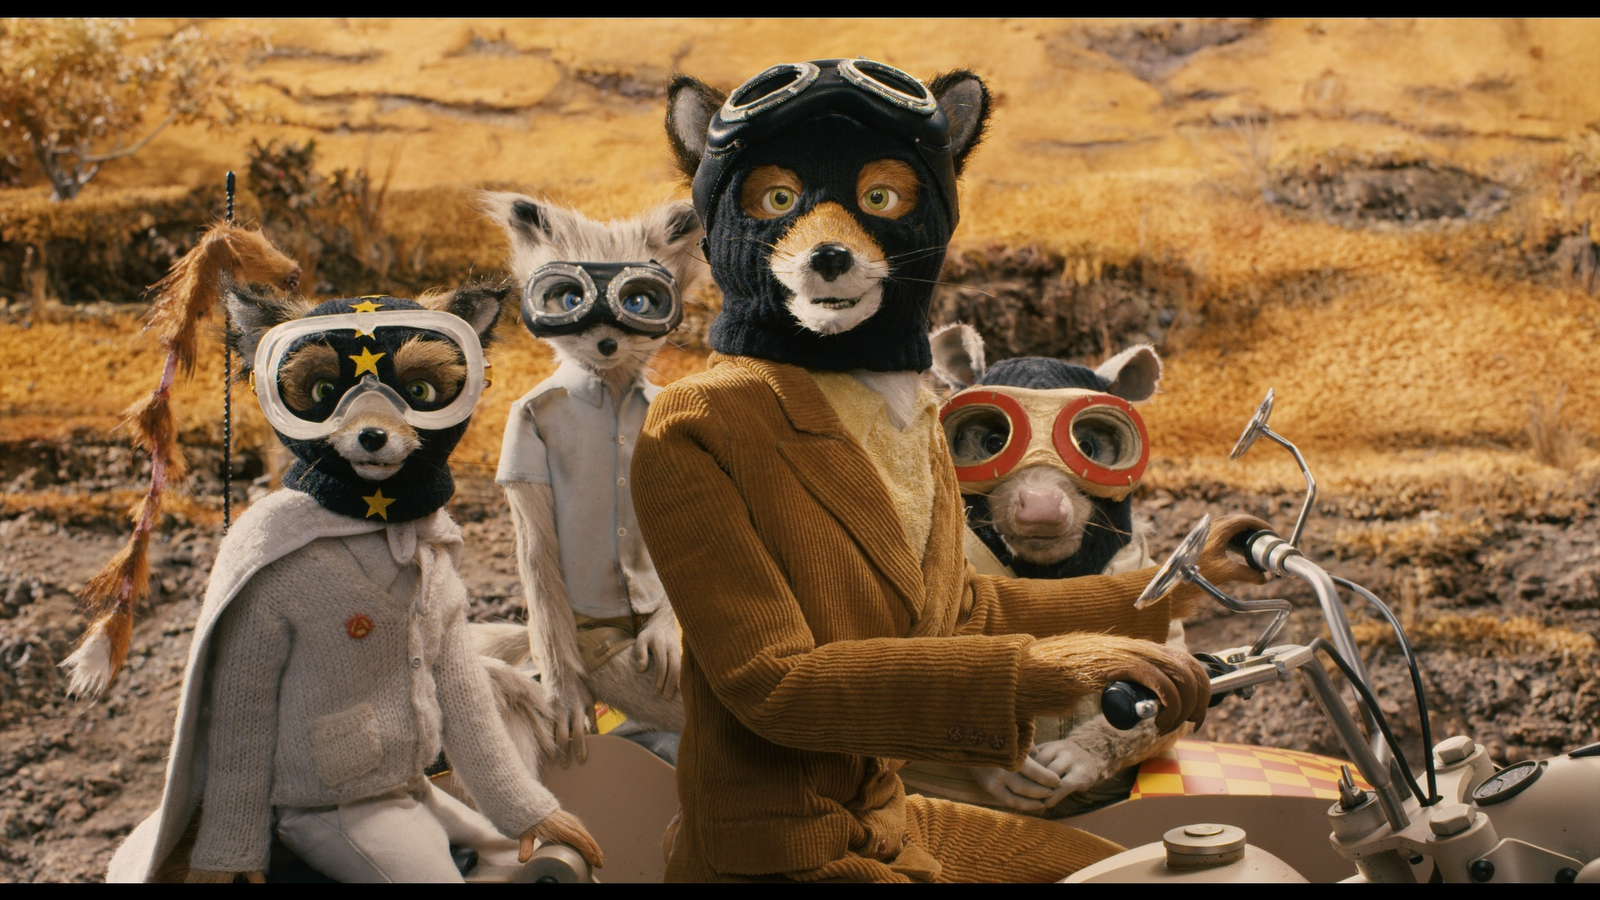 Fantastic Mr Fox. Mr Fox (centre) wears a brown cord backer and a balaclava, riding a motorcycle with two smaller foxes, Ash Fox and Kristofferson Silverfox, and Kylie the opossum riding in the sidecar with him. They are all wearing driving goggles and gazing at the camera.